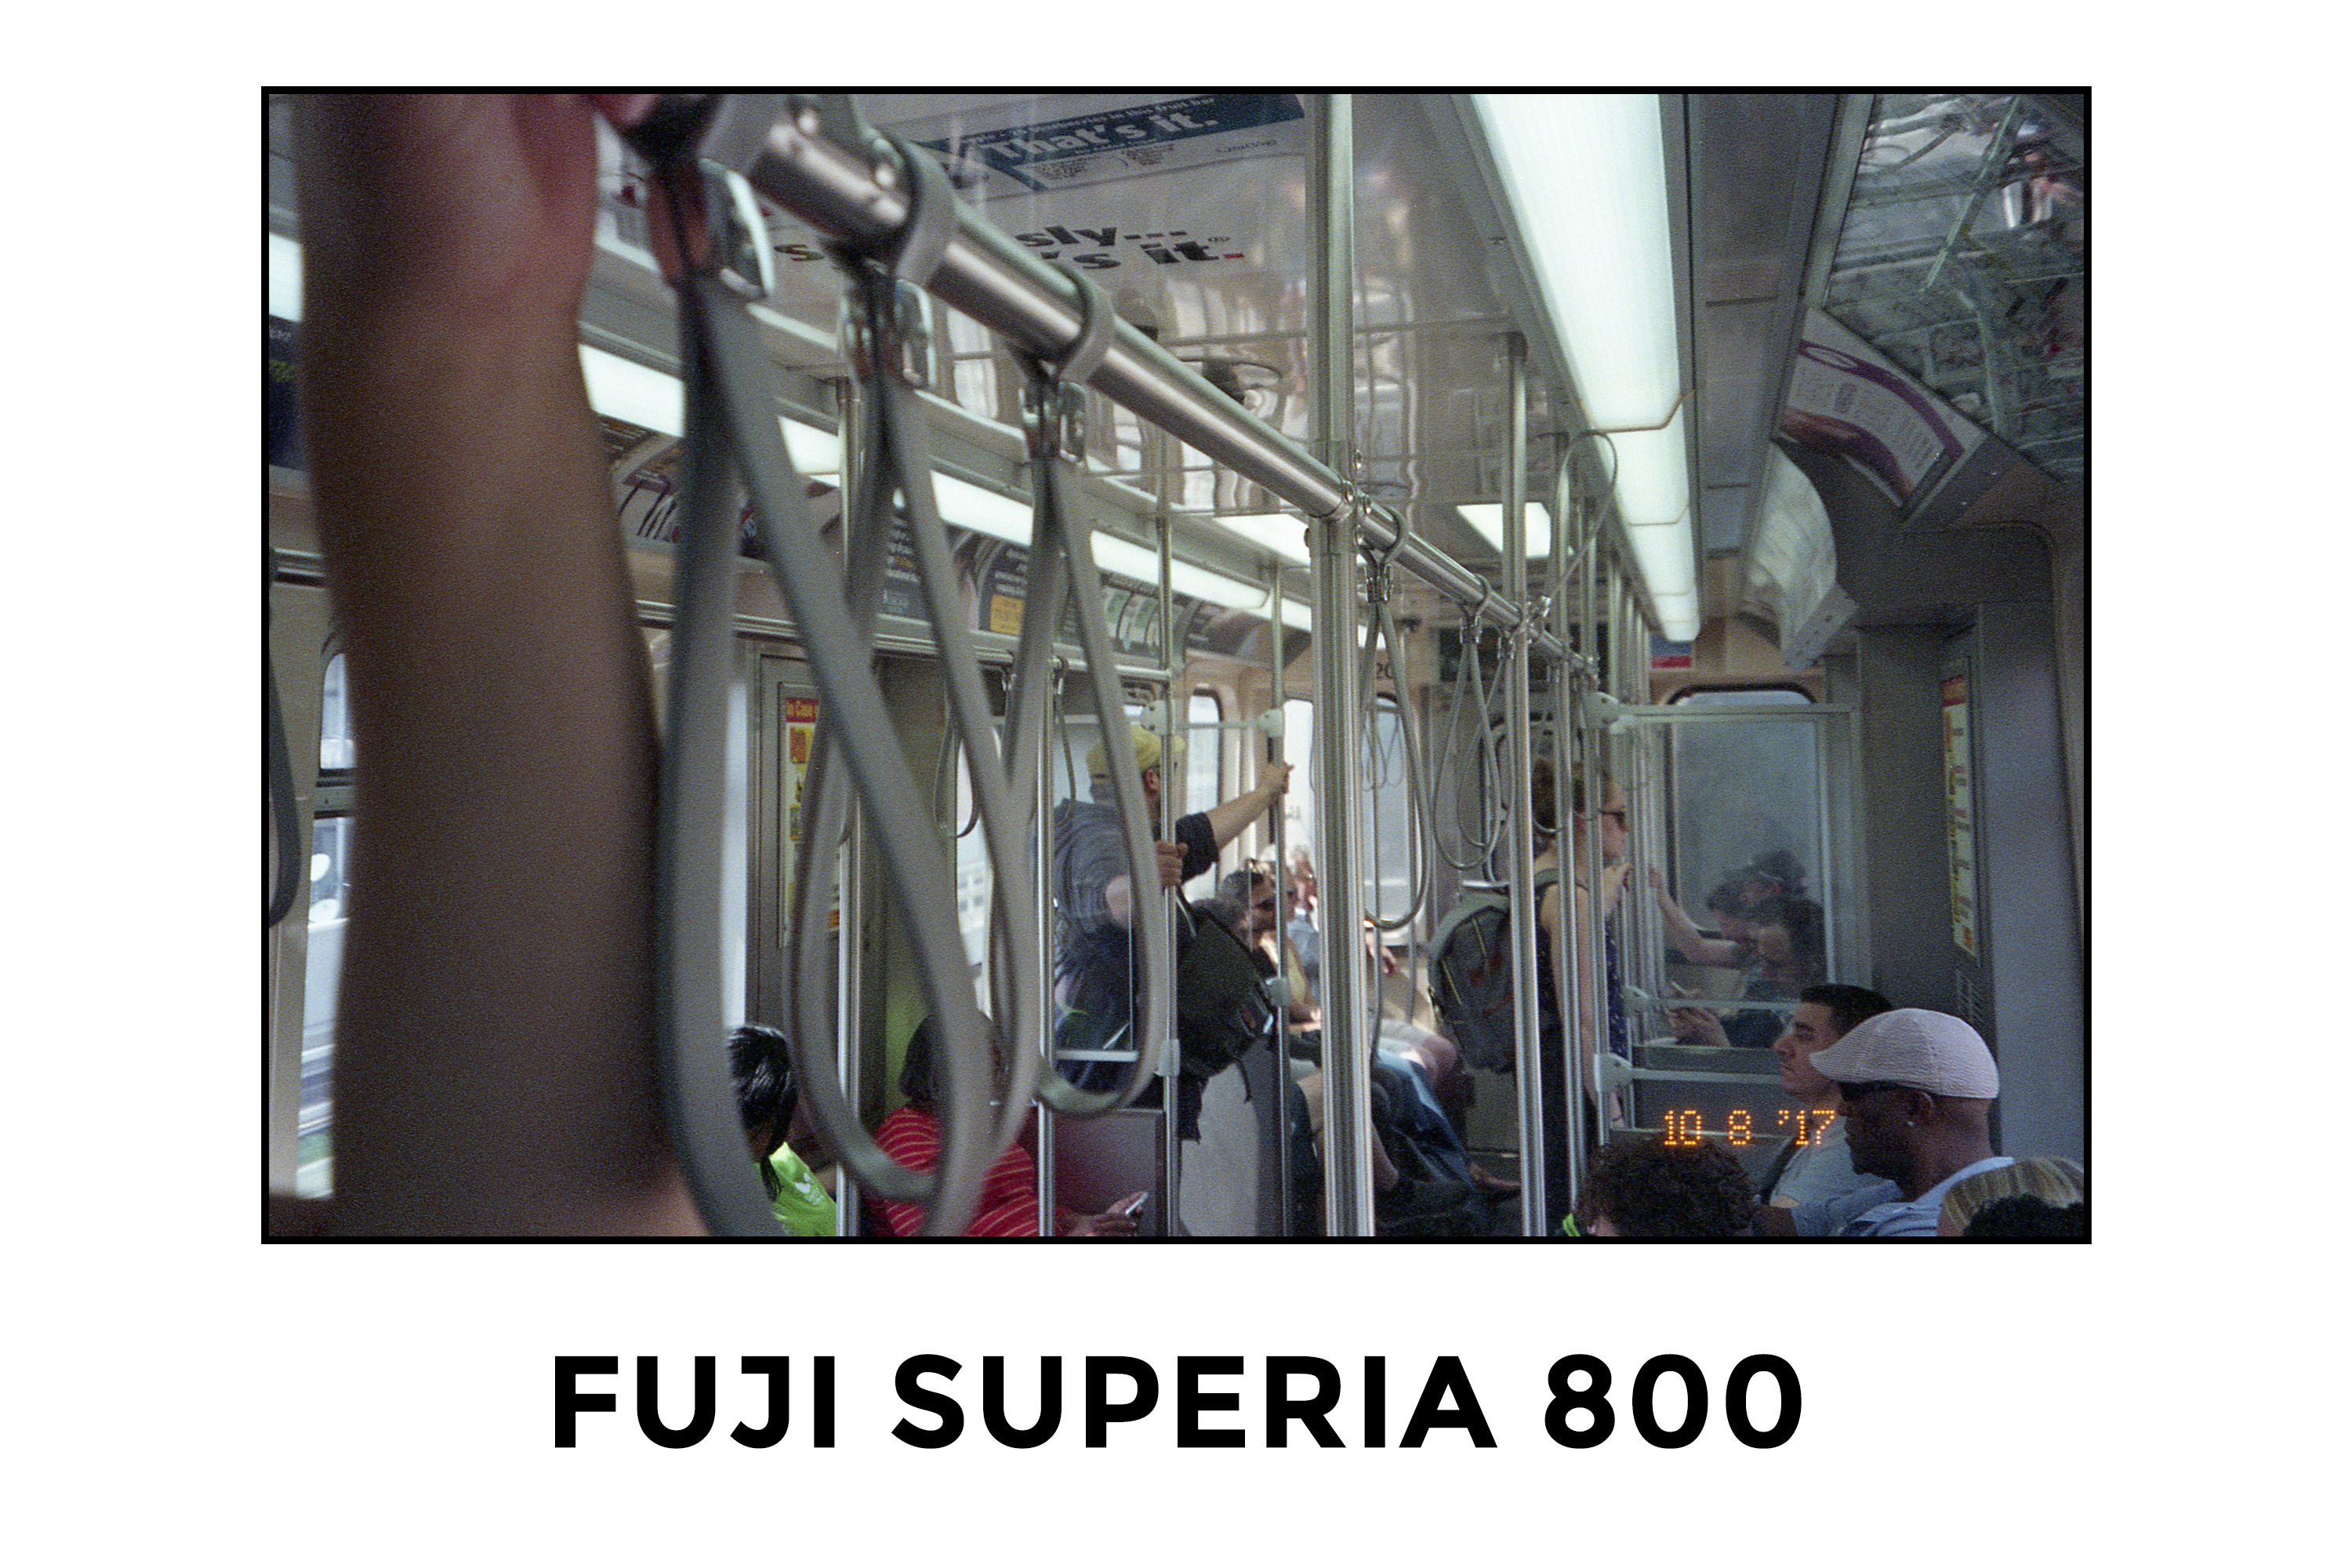 Fuji Superai 800 (2) - Fuji Superia 800 vs. Kodak Portra 800 Film Stock Review - FilterGrade Blog